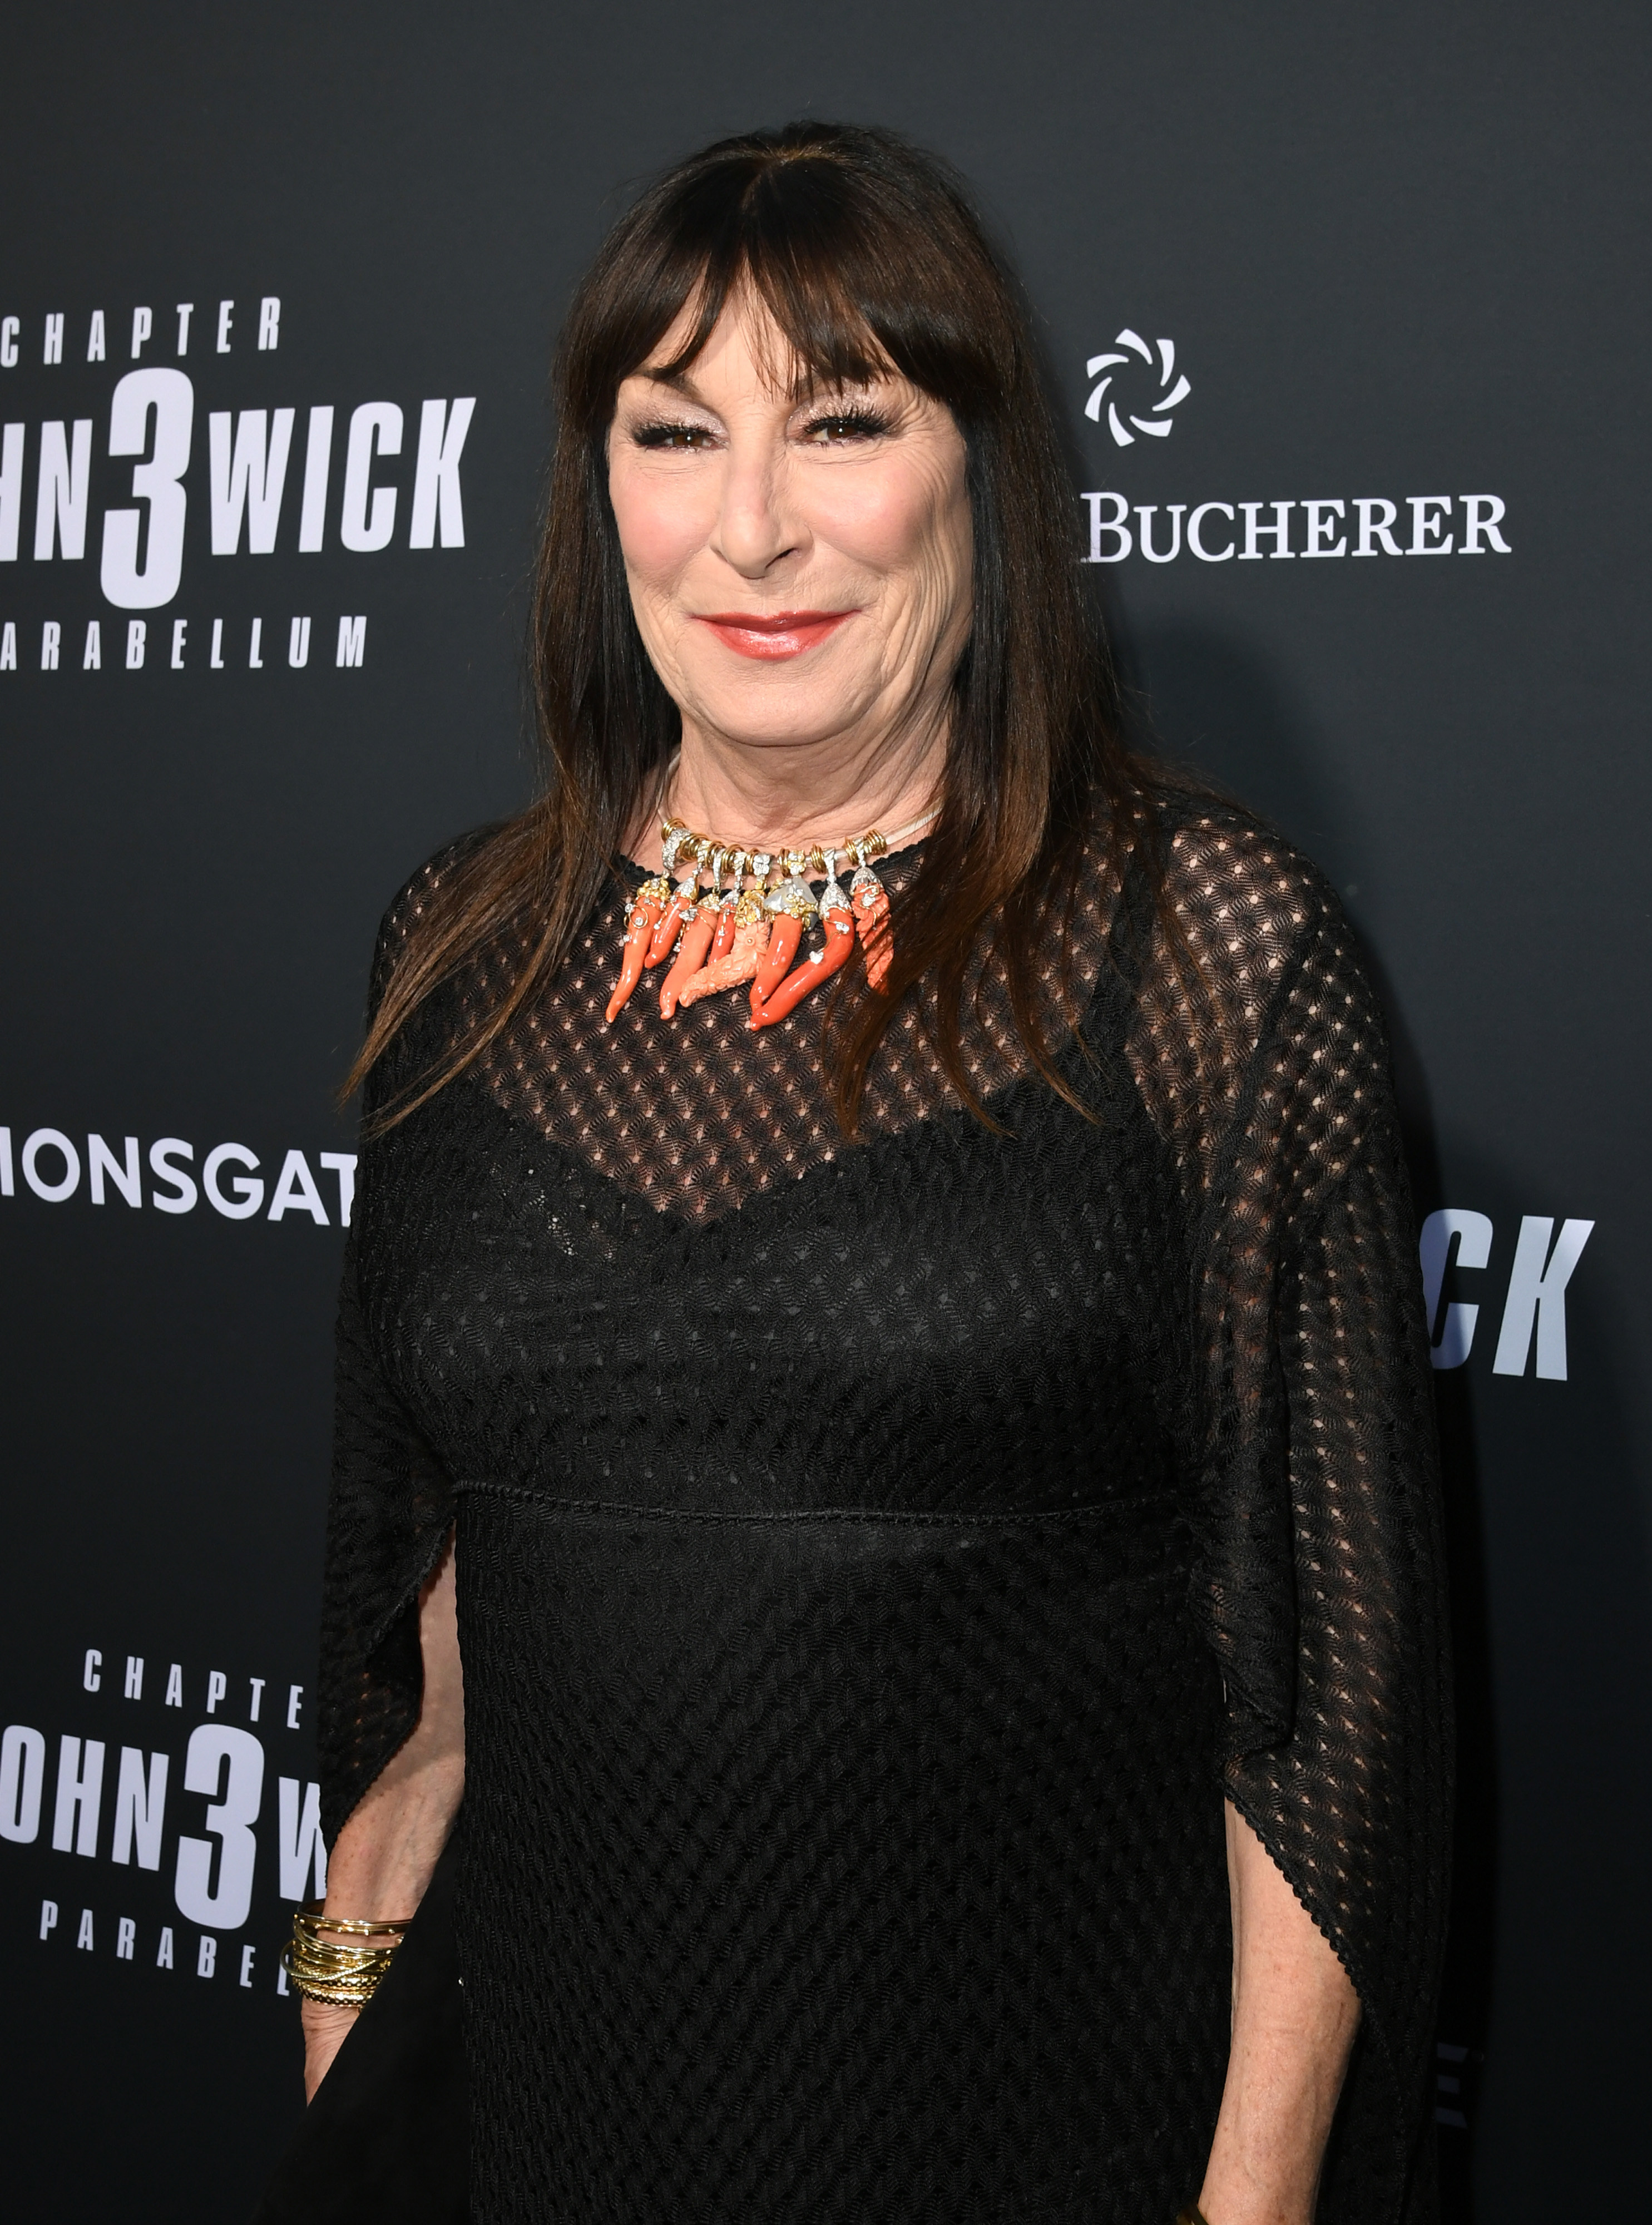 Anjelica on the red carpet